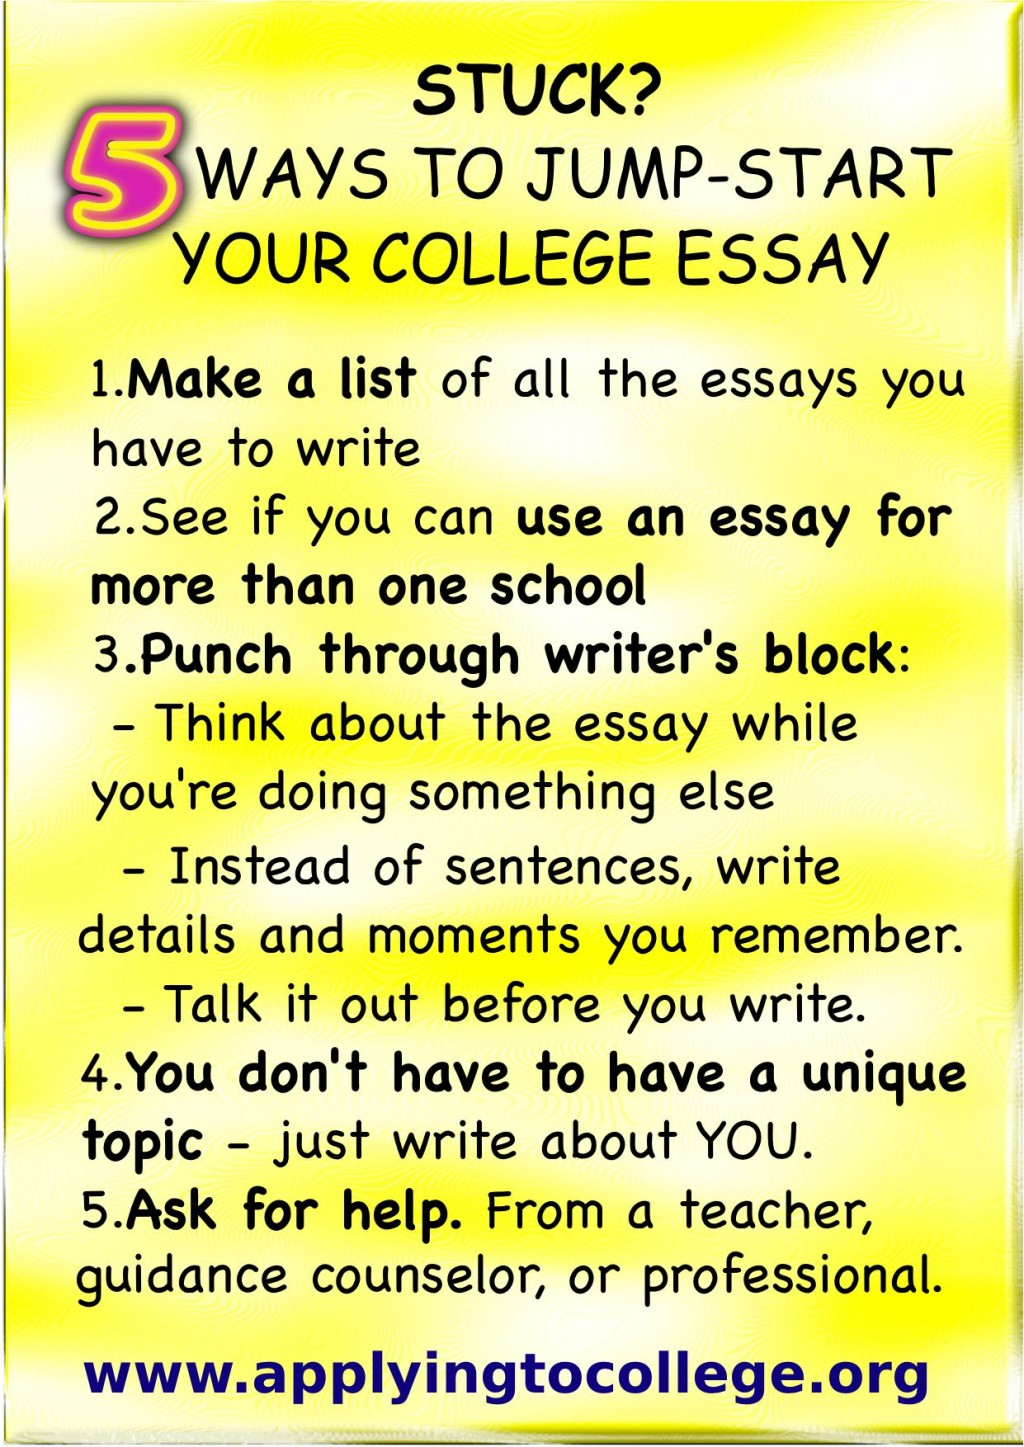 016 Essay Example Writing College Application Rare A How To Write That Stands Out About Yourself Examples Of Uc Essays Large